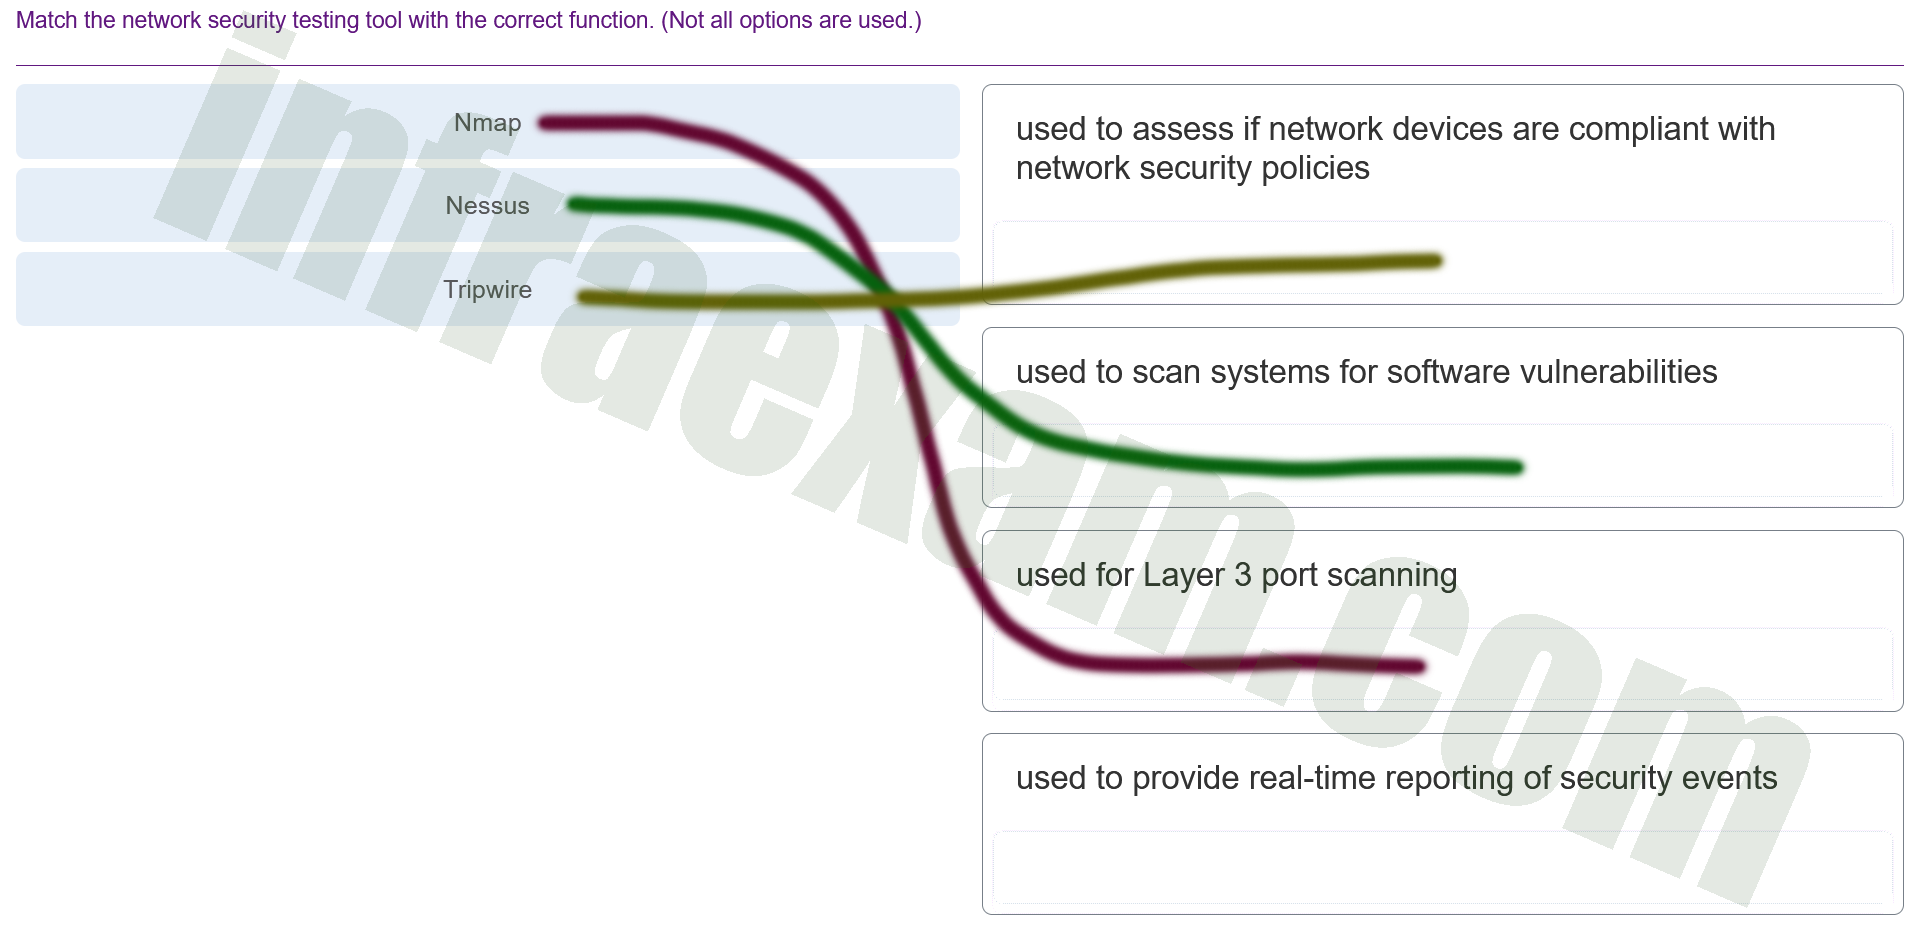 Network Security (Version 1) - Network Security 1.0 Practice Final Answers 006